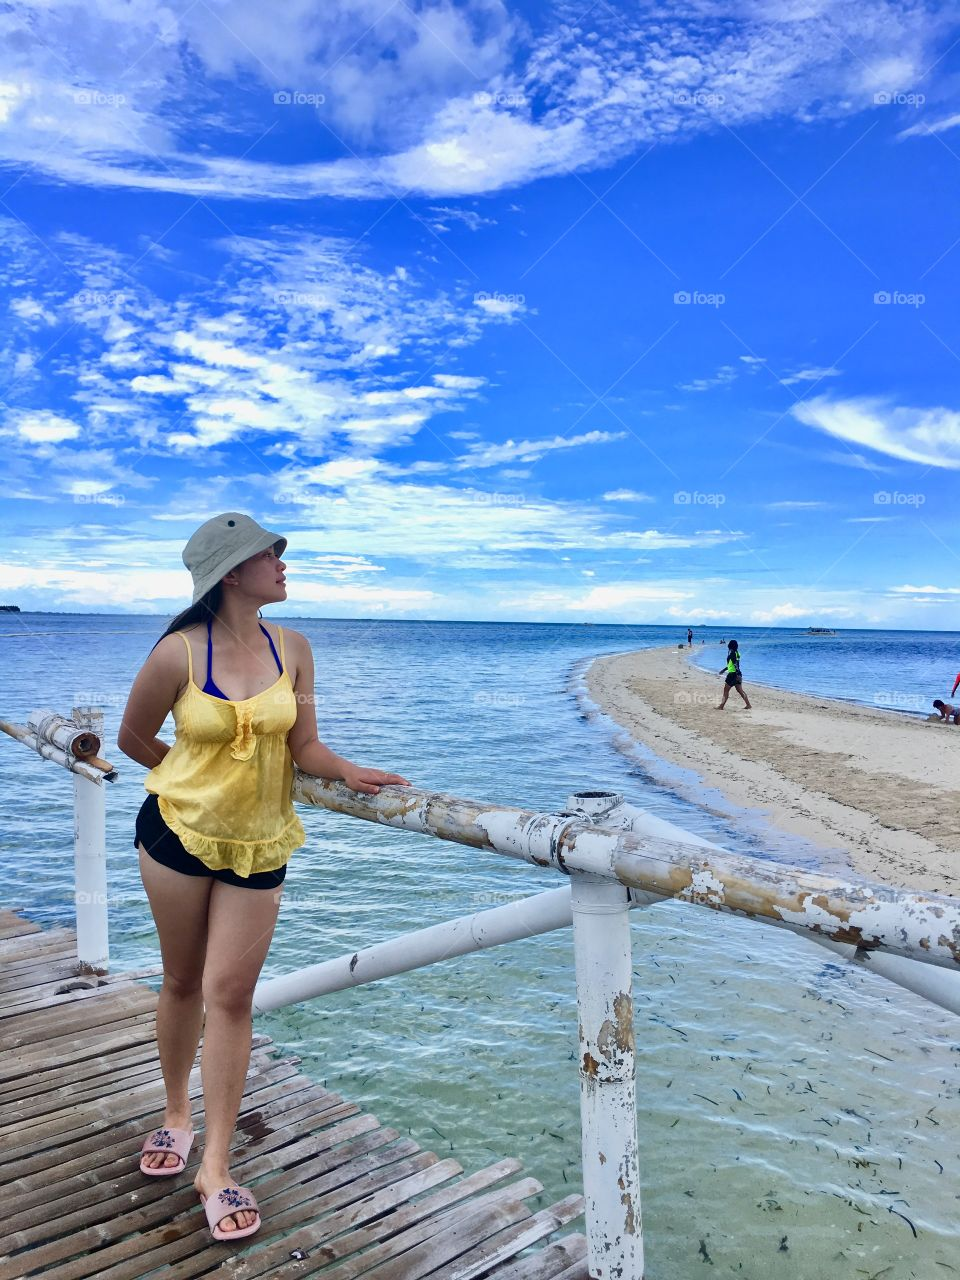 One reason to visit Philippines because of the breathtaking views of the beaches here. Endure yourself with the powdery sand, the crystal clear water of the beaches and the fresh circulation of air coming from the wildnerness. Come and check out!